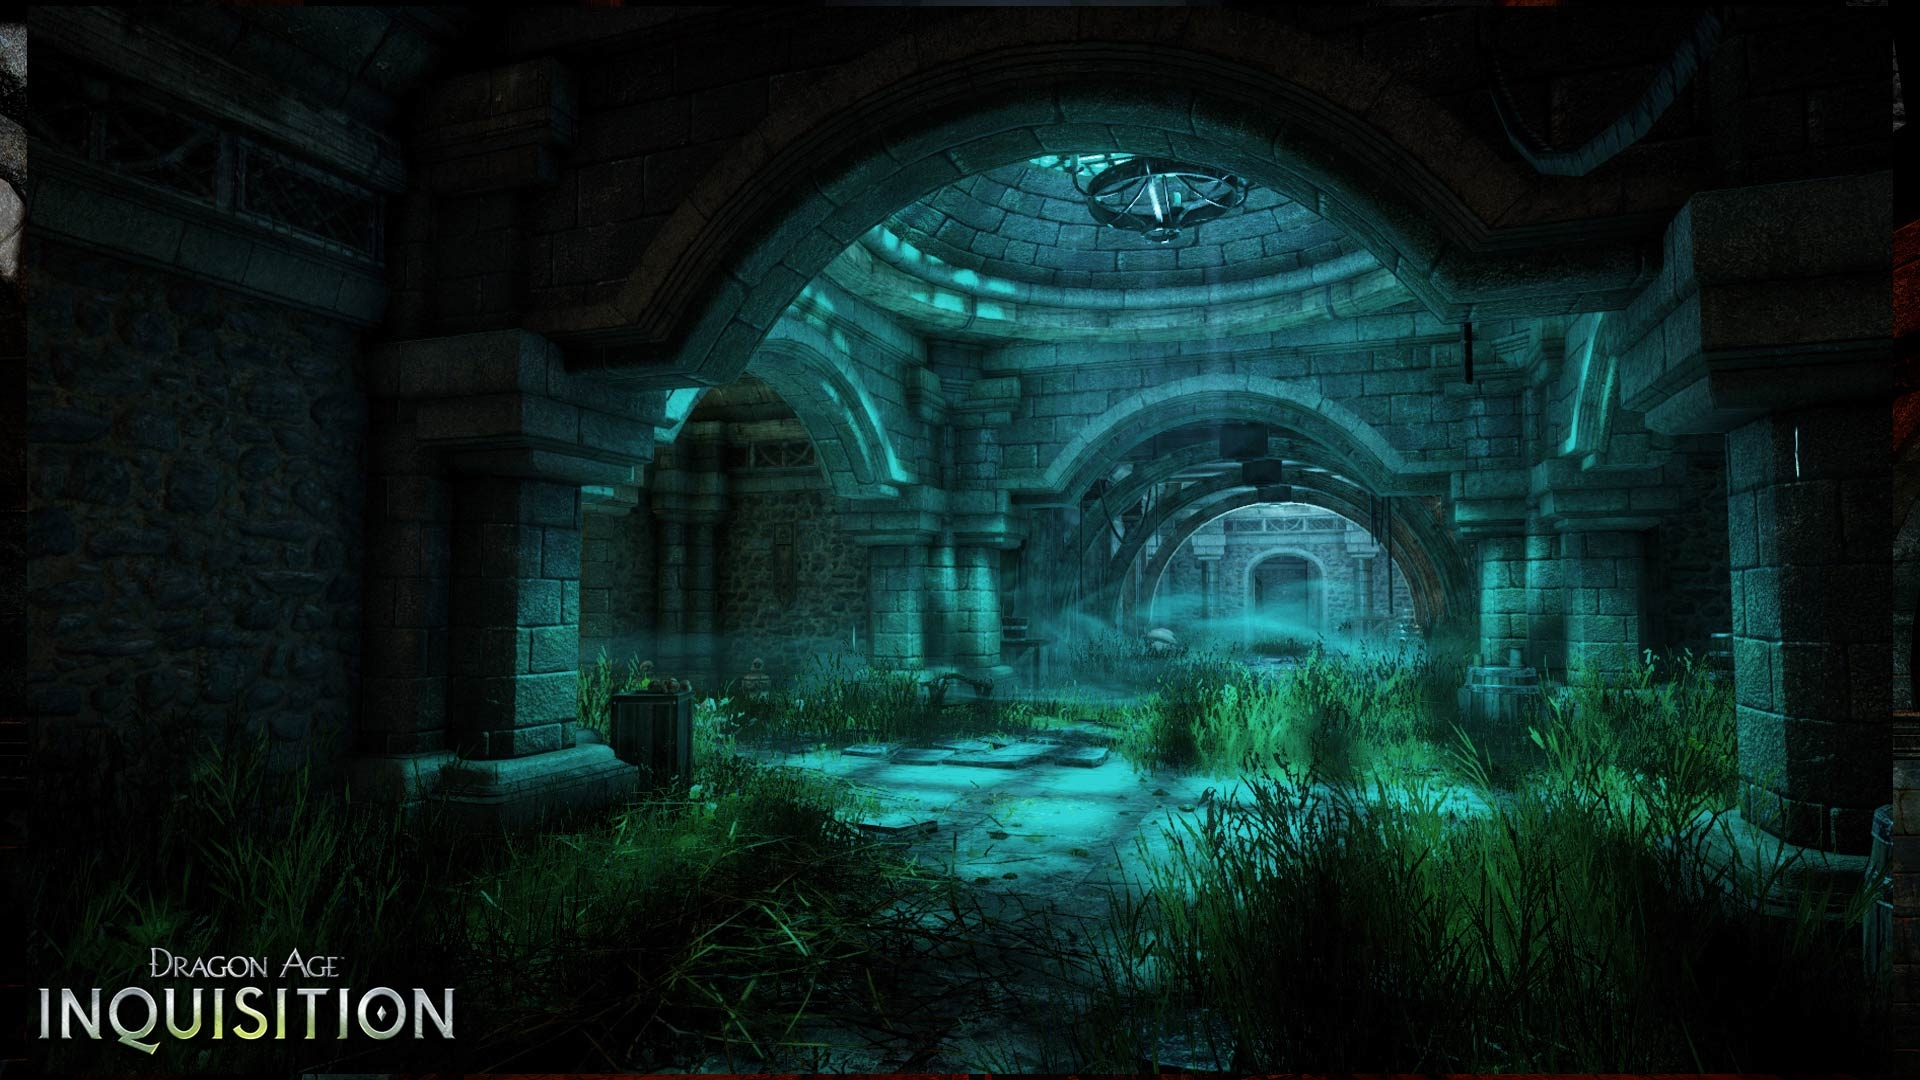 Occult Wallpapers Hd Dragon Age Inquisition Expectations And Impressions Txk